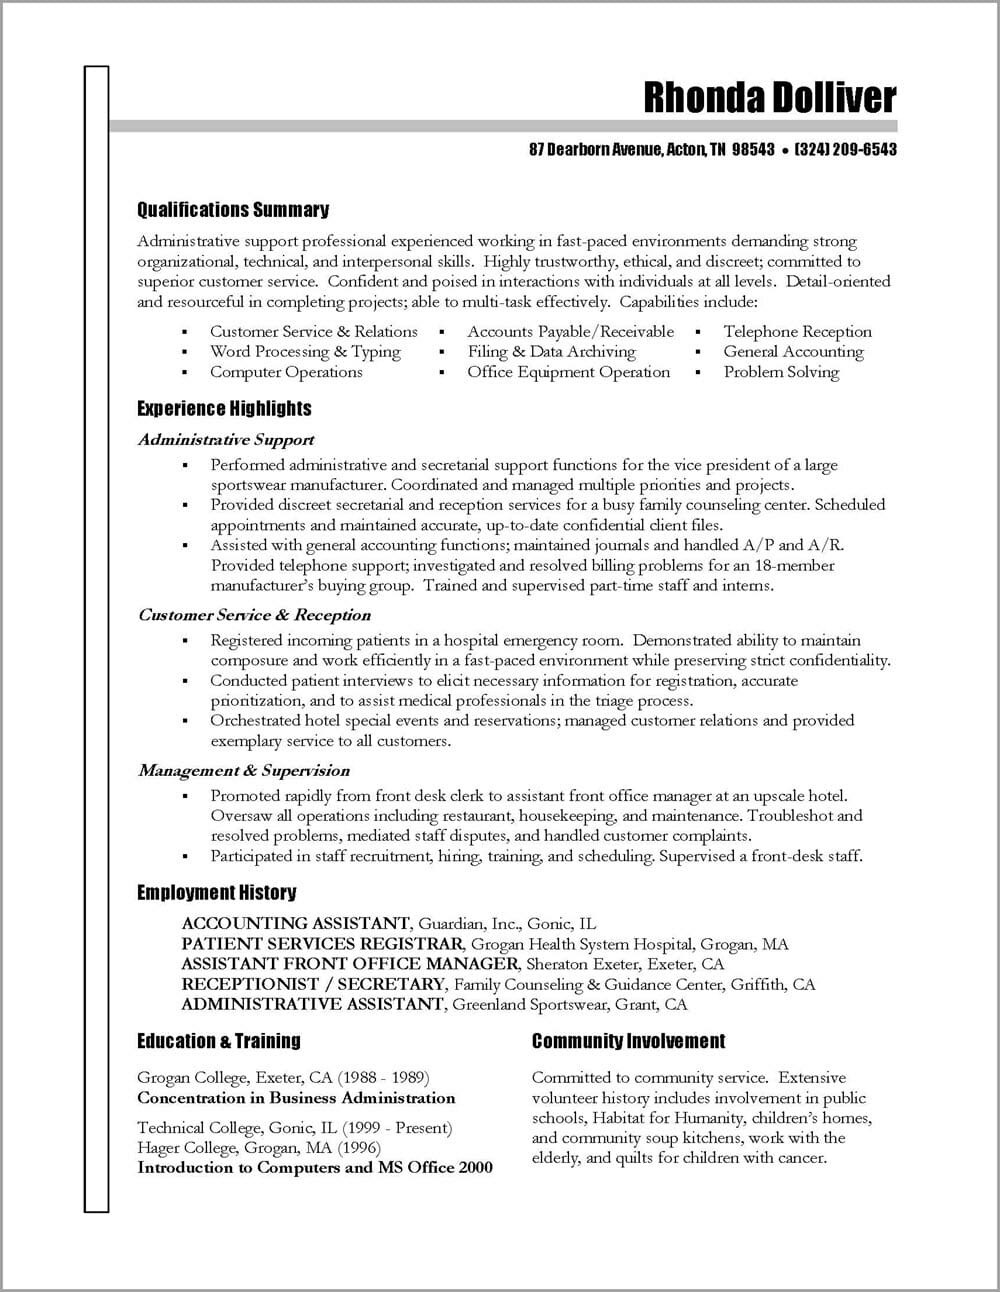 Sample Functional Resume for Administrative assistant Administrative assistant Resume – Distinctive Career Services